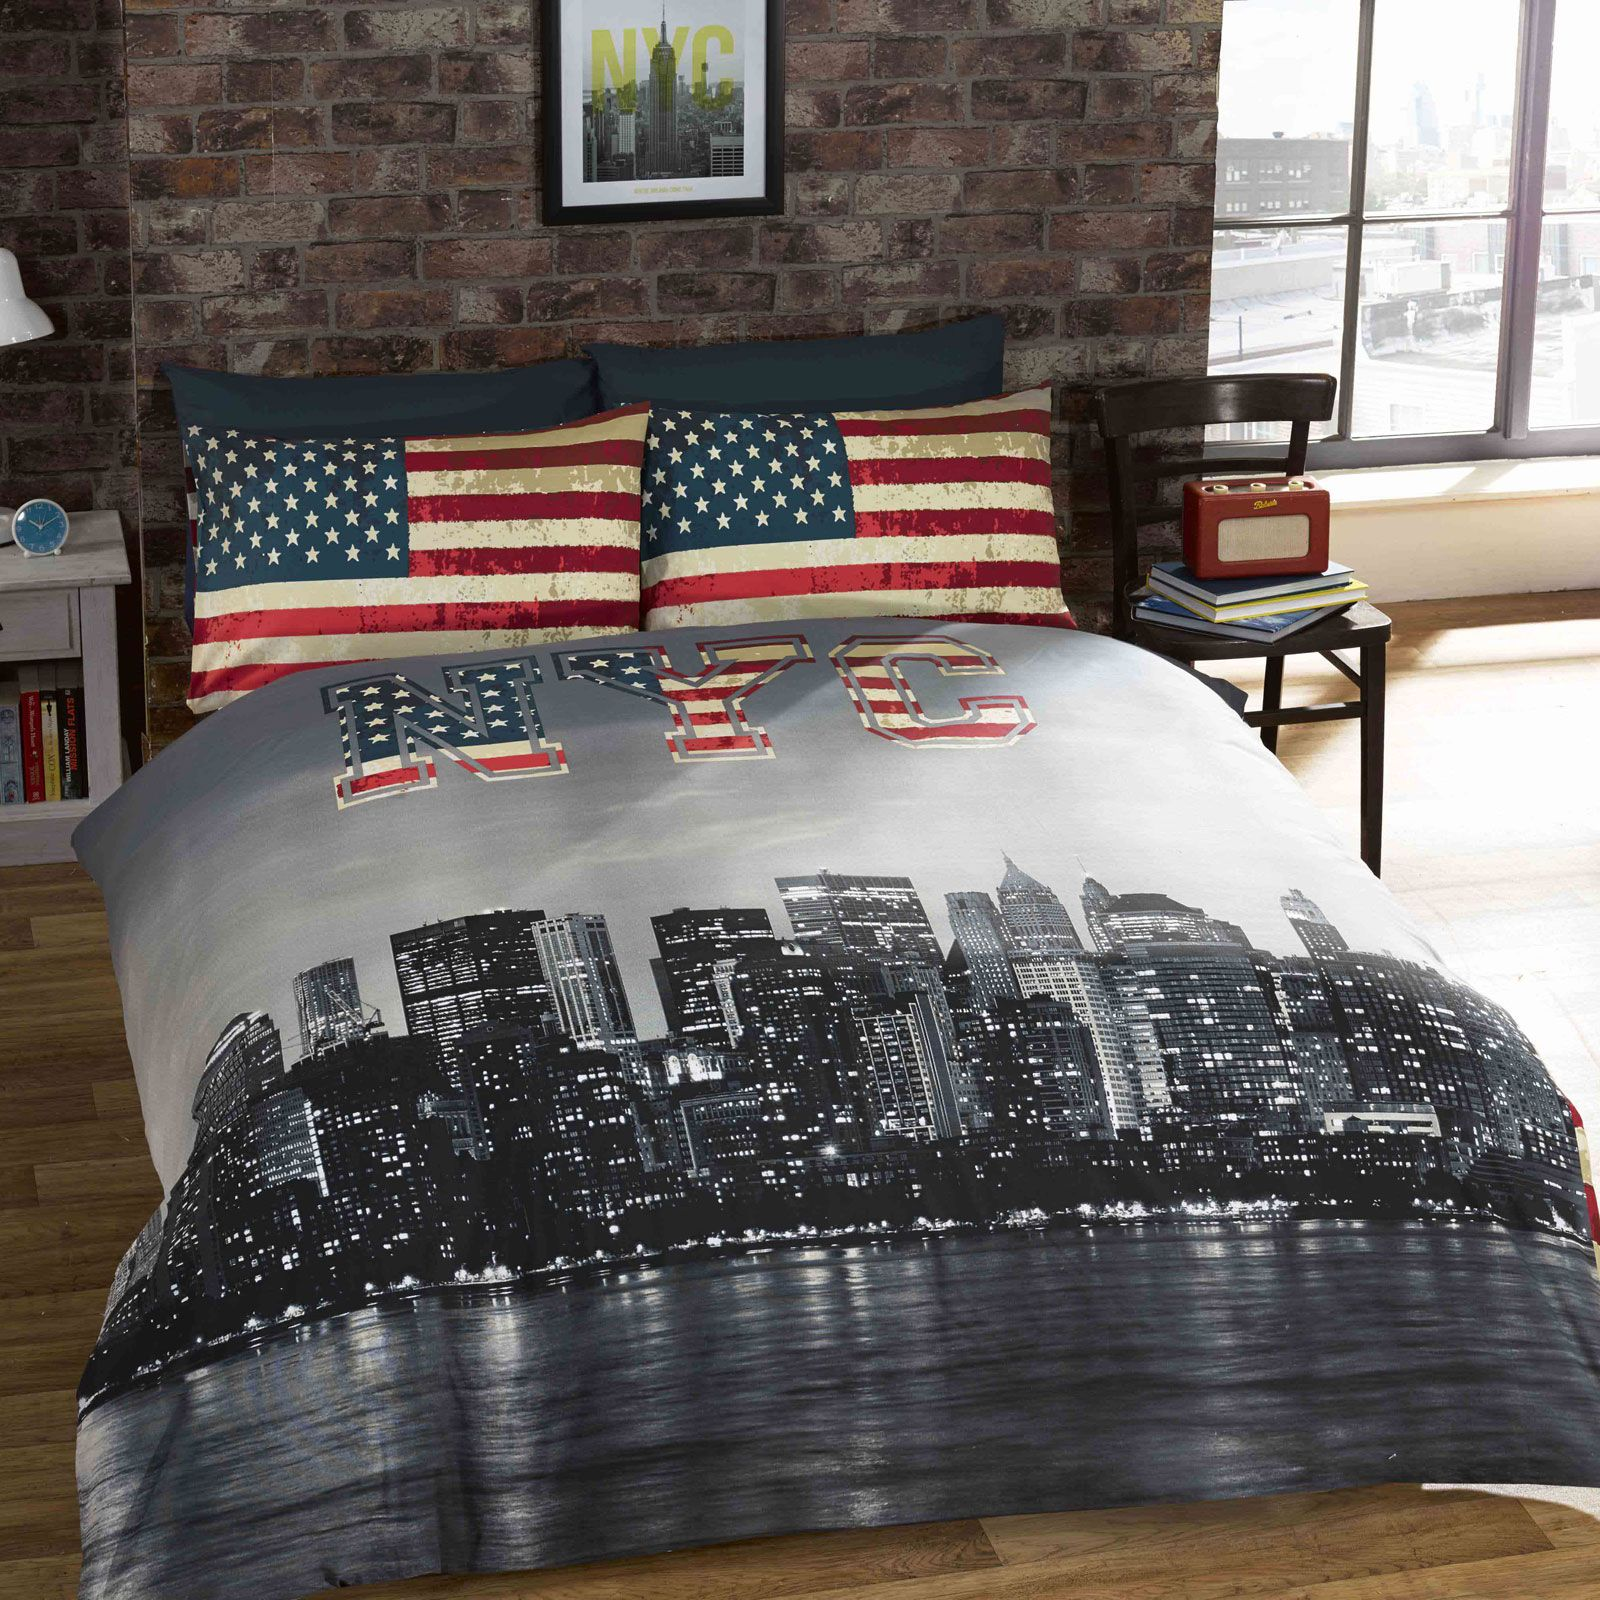 Couette 90x200 New York City Bedding Single Duvet Cover Sets Usa Skyline